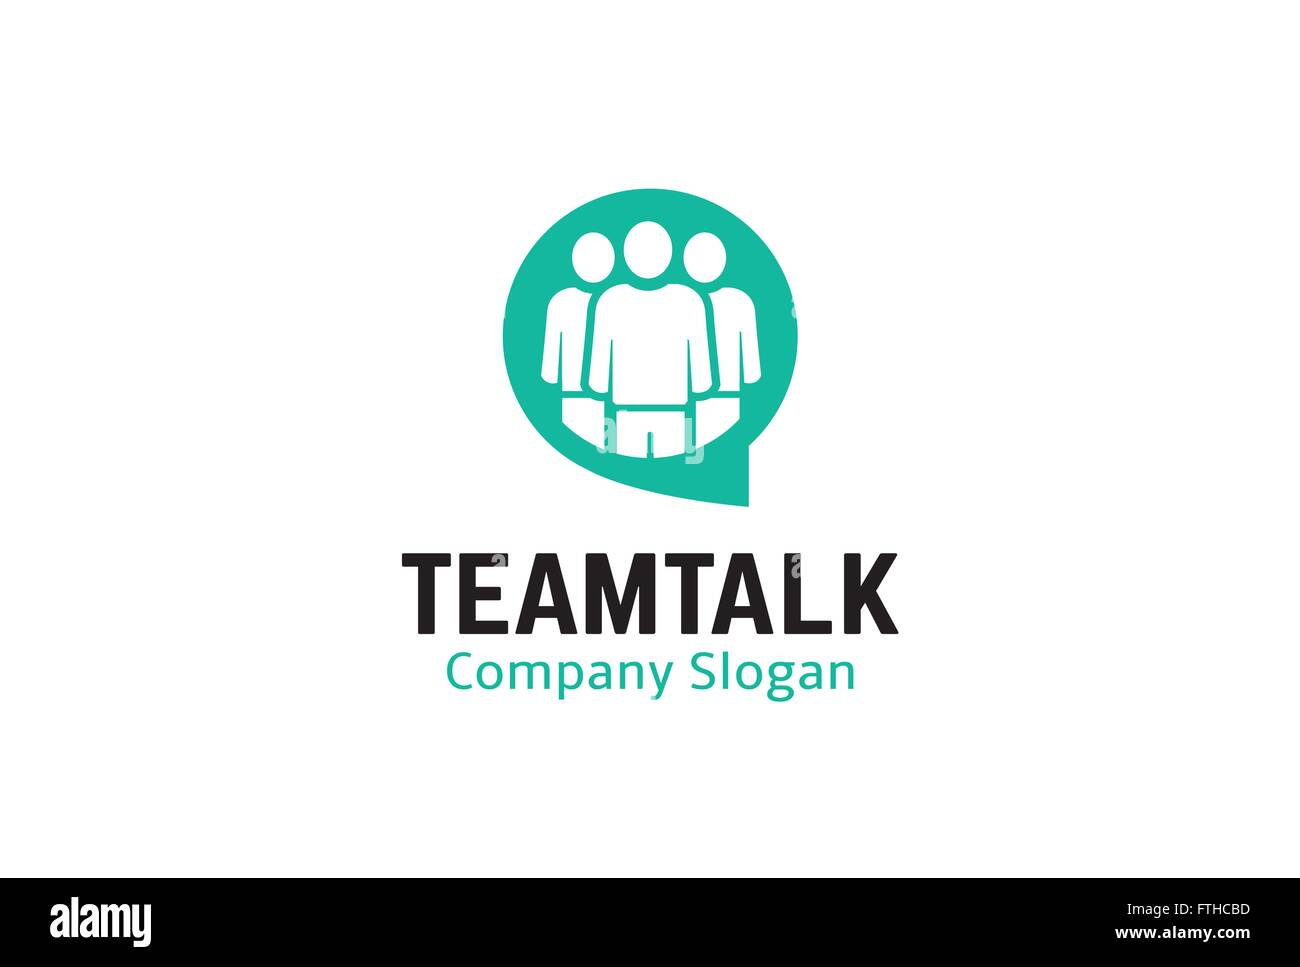 Team Talk Design Illustration - Stock Vector